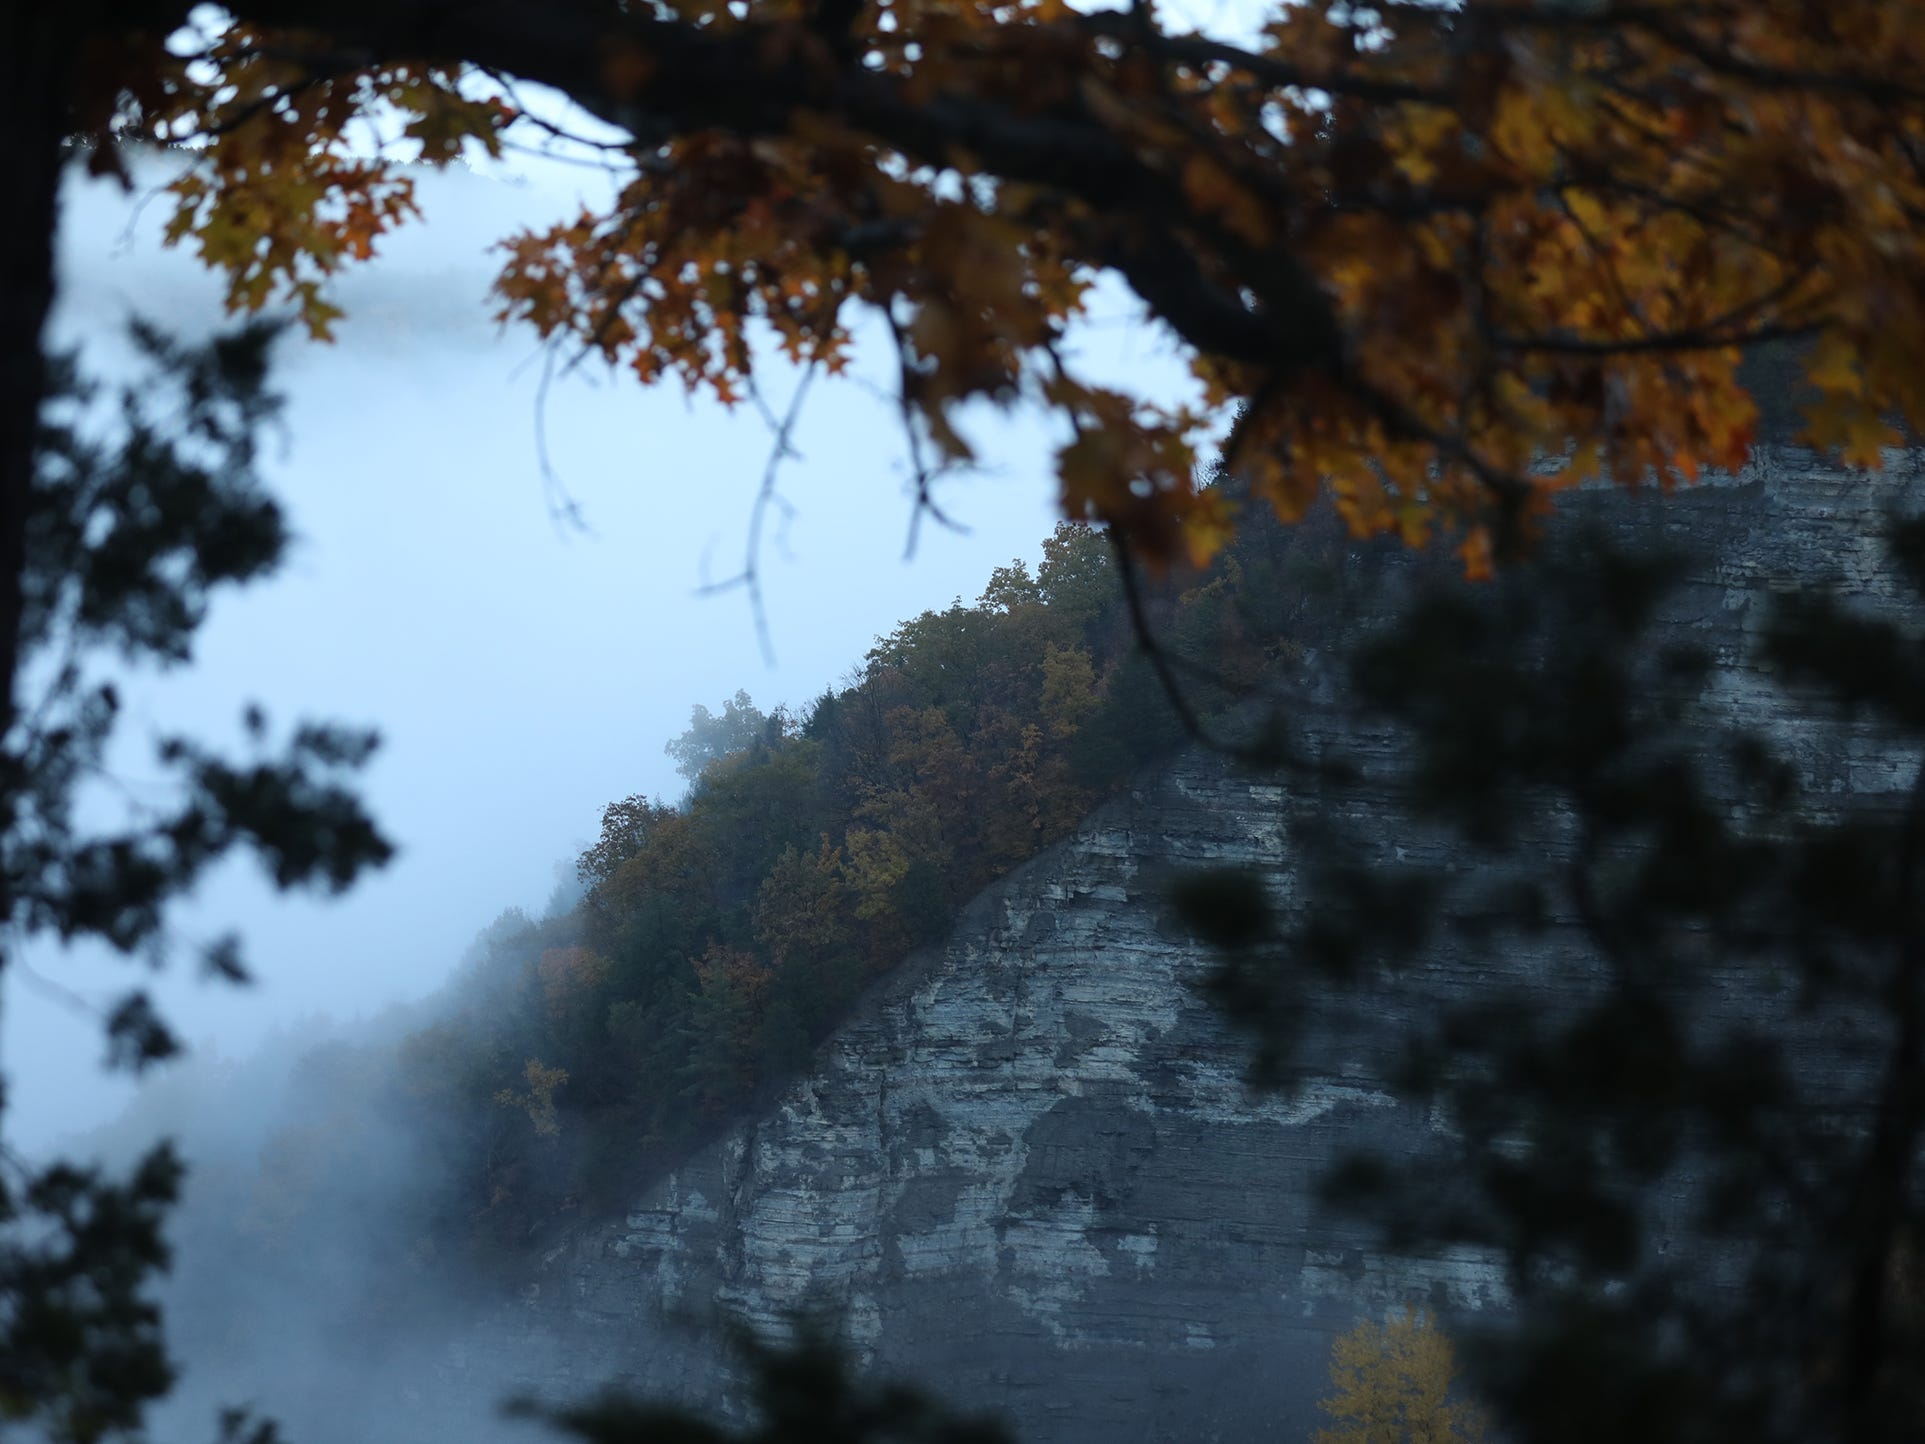 Fog obscures, temporarily, portions of the gorge at the Archery Field Overlook in Letchworth State Park.